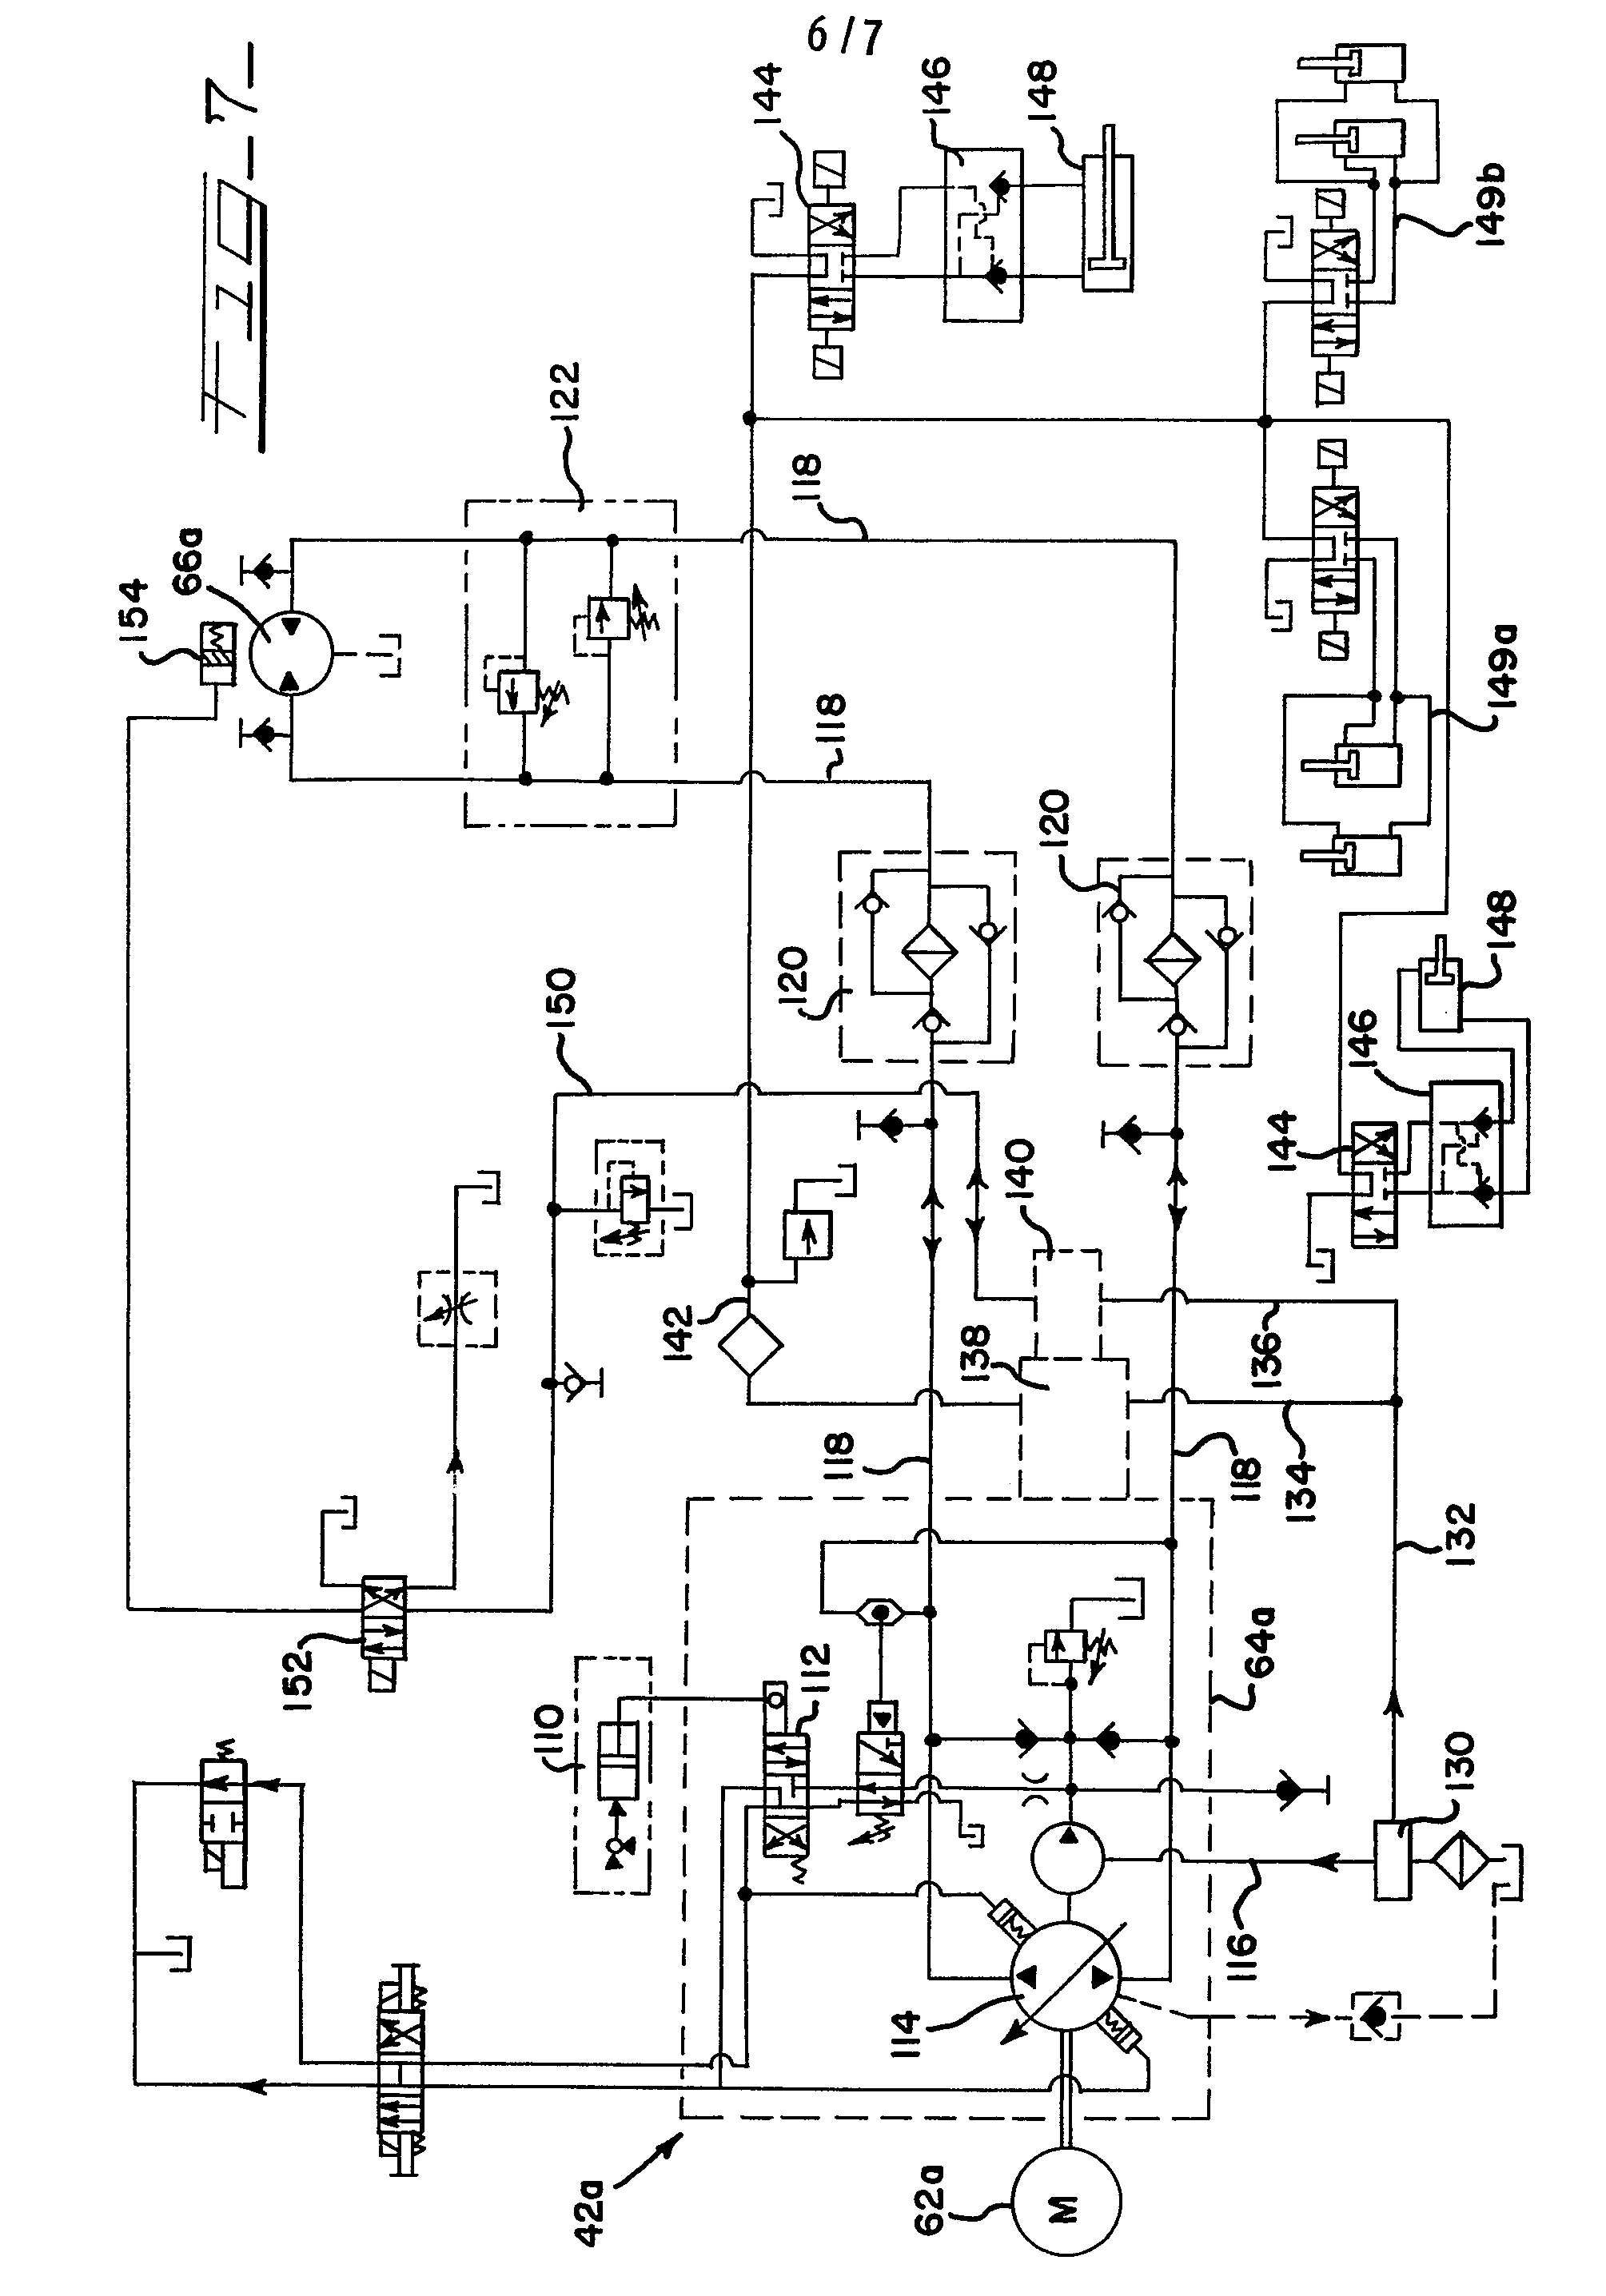 wiring diagram of whirlpool refrigerator